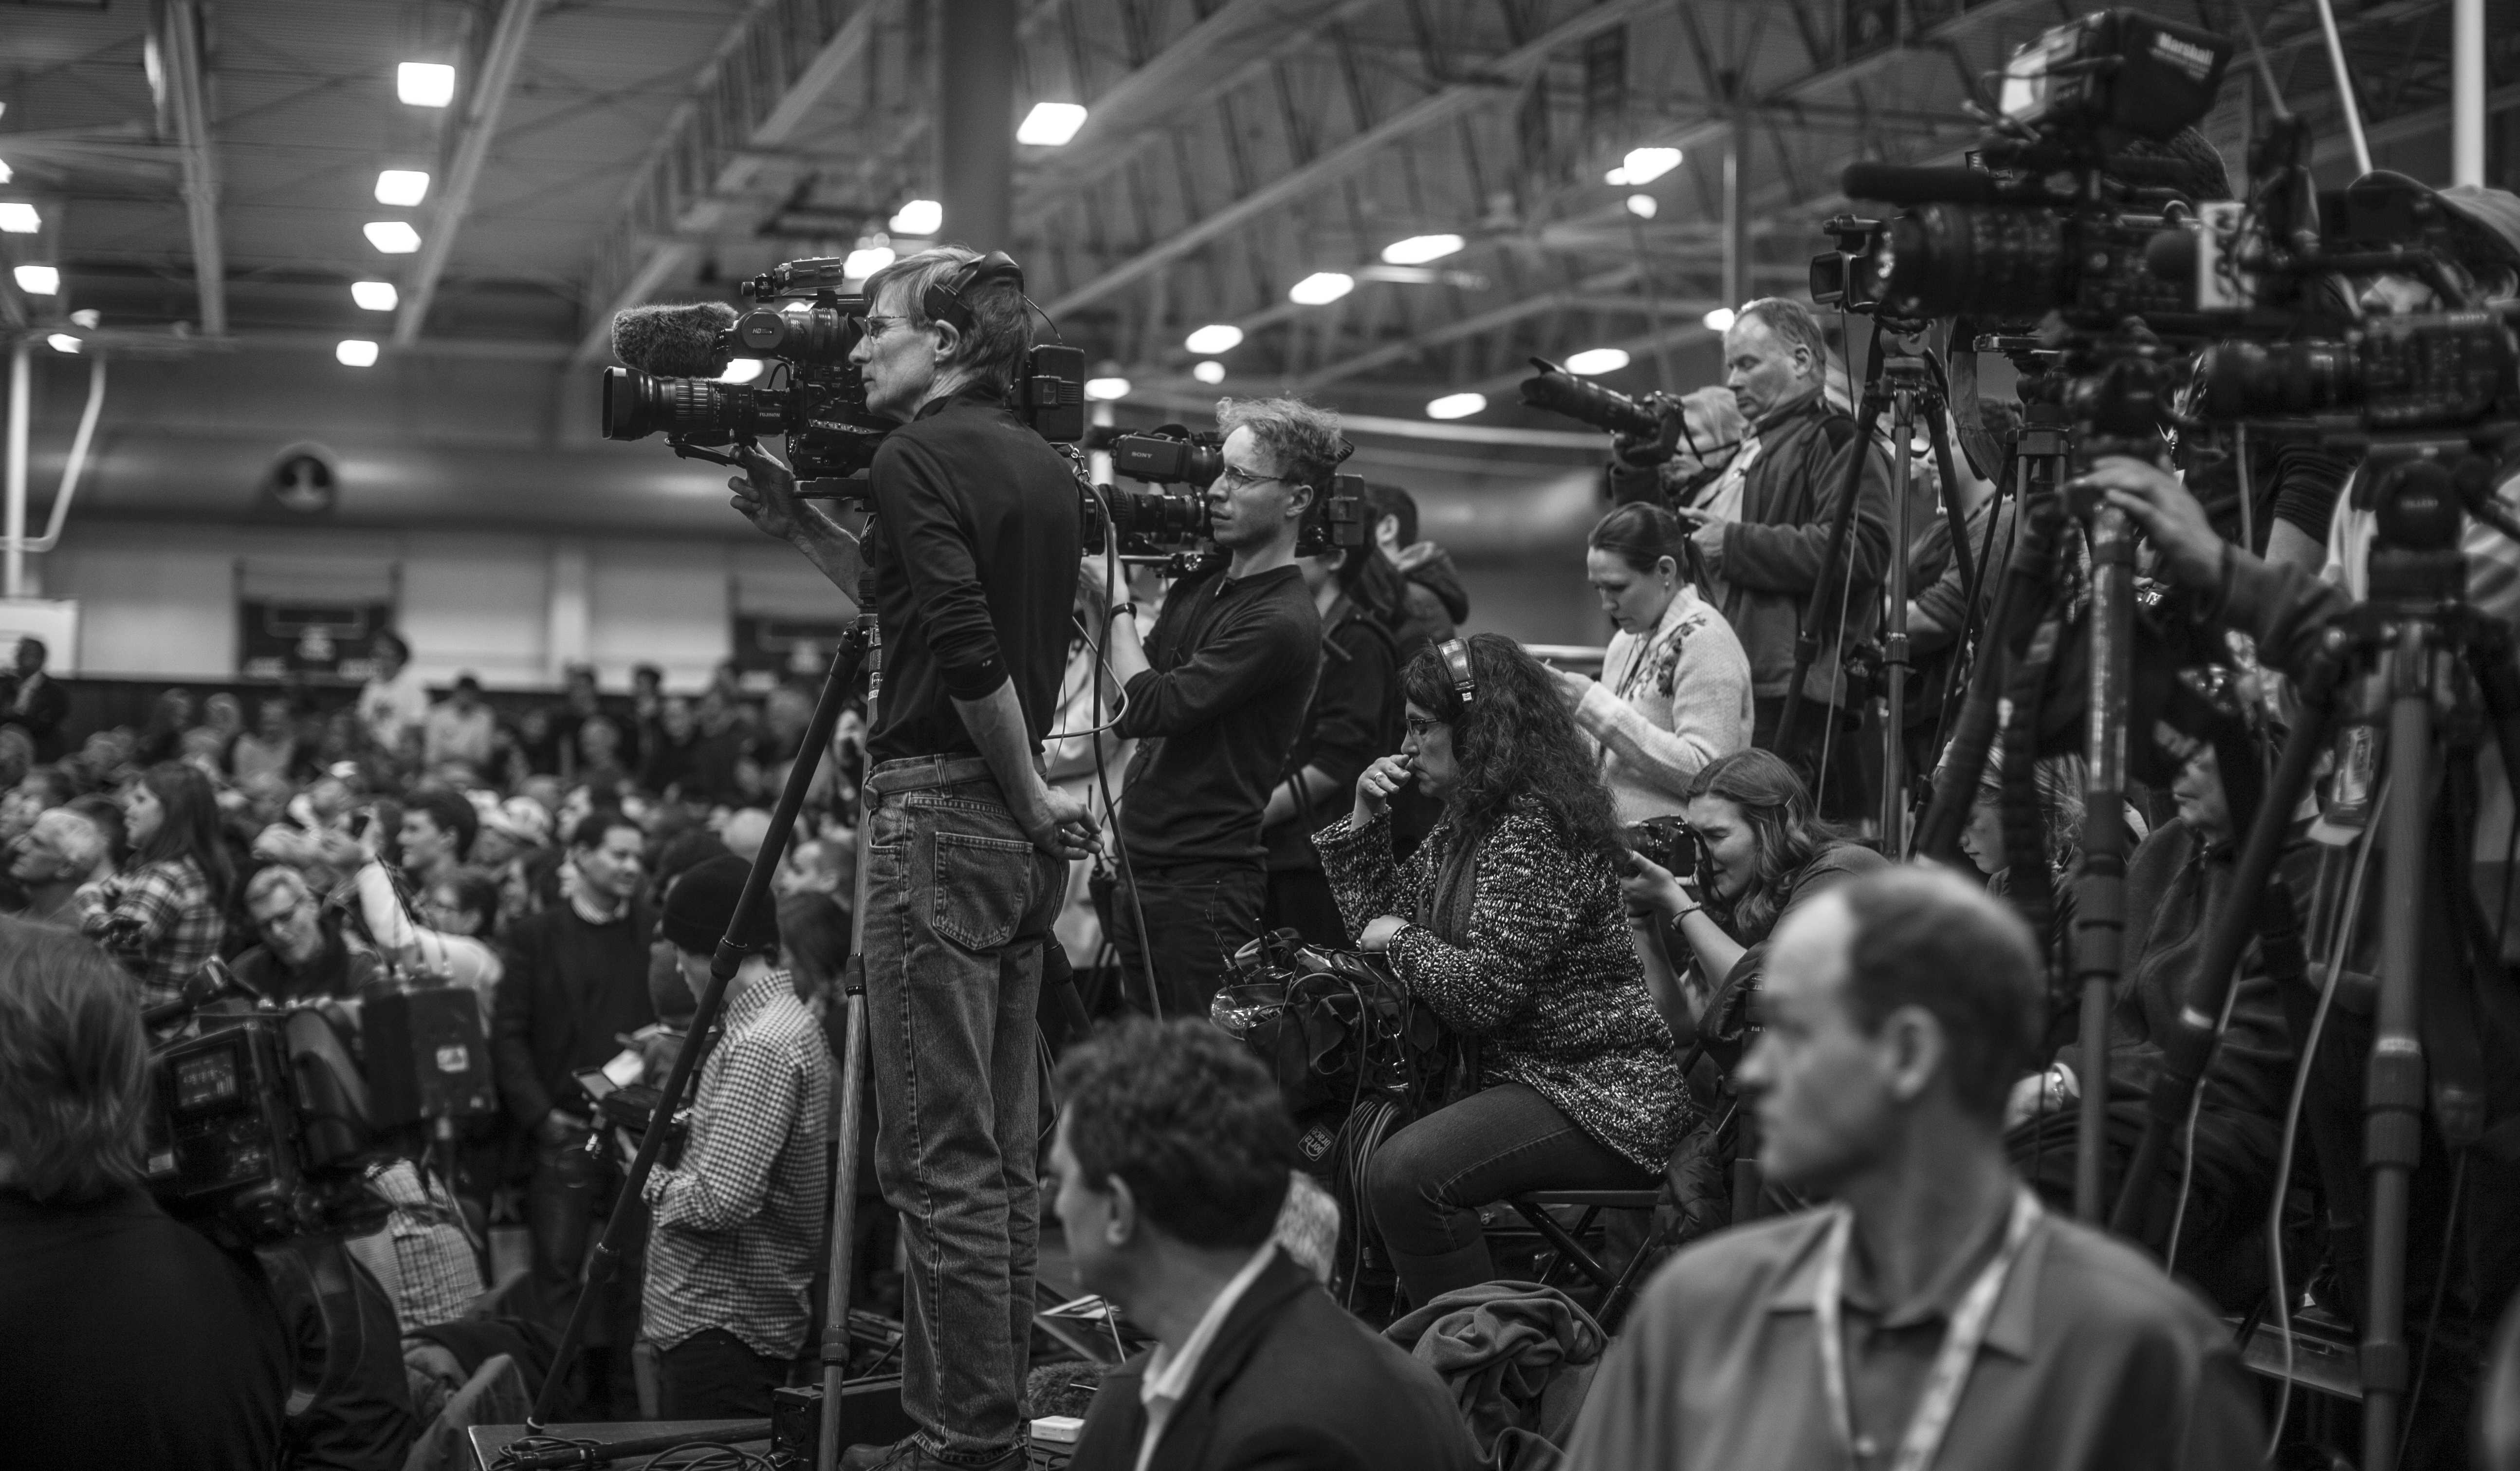 Media outlets cover Donald Trump's speech from the press booth at the University Field House on Tuesday, Jan 26, 2016.  Donald Trump and Ted Cruz are currently tied in Iowa. (The Daily Iowan/Jordan Gale)